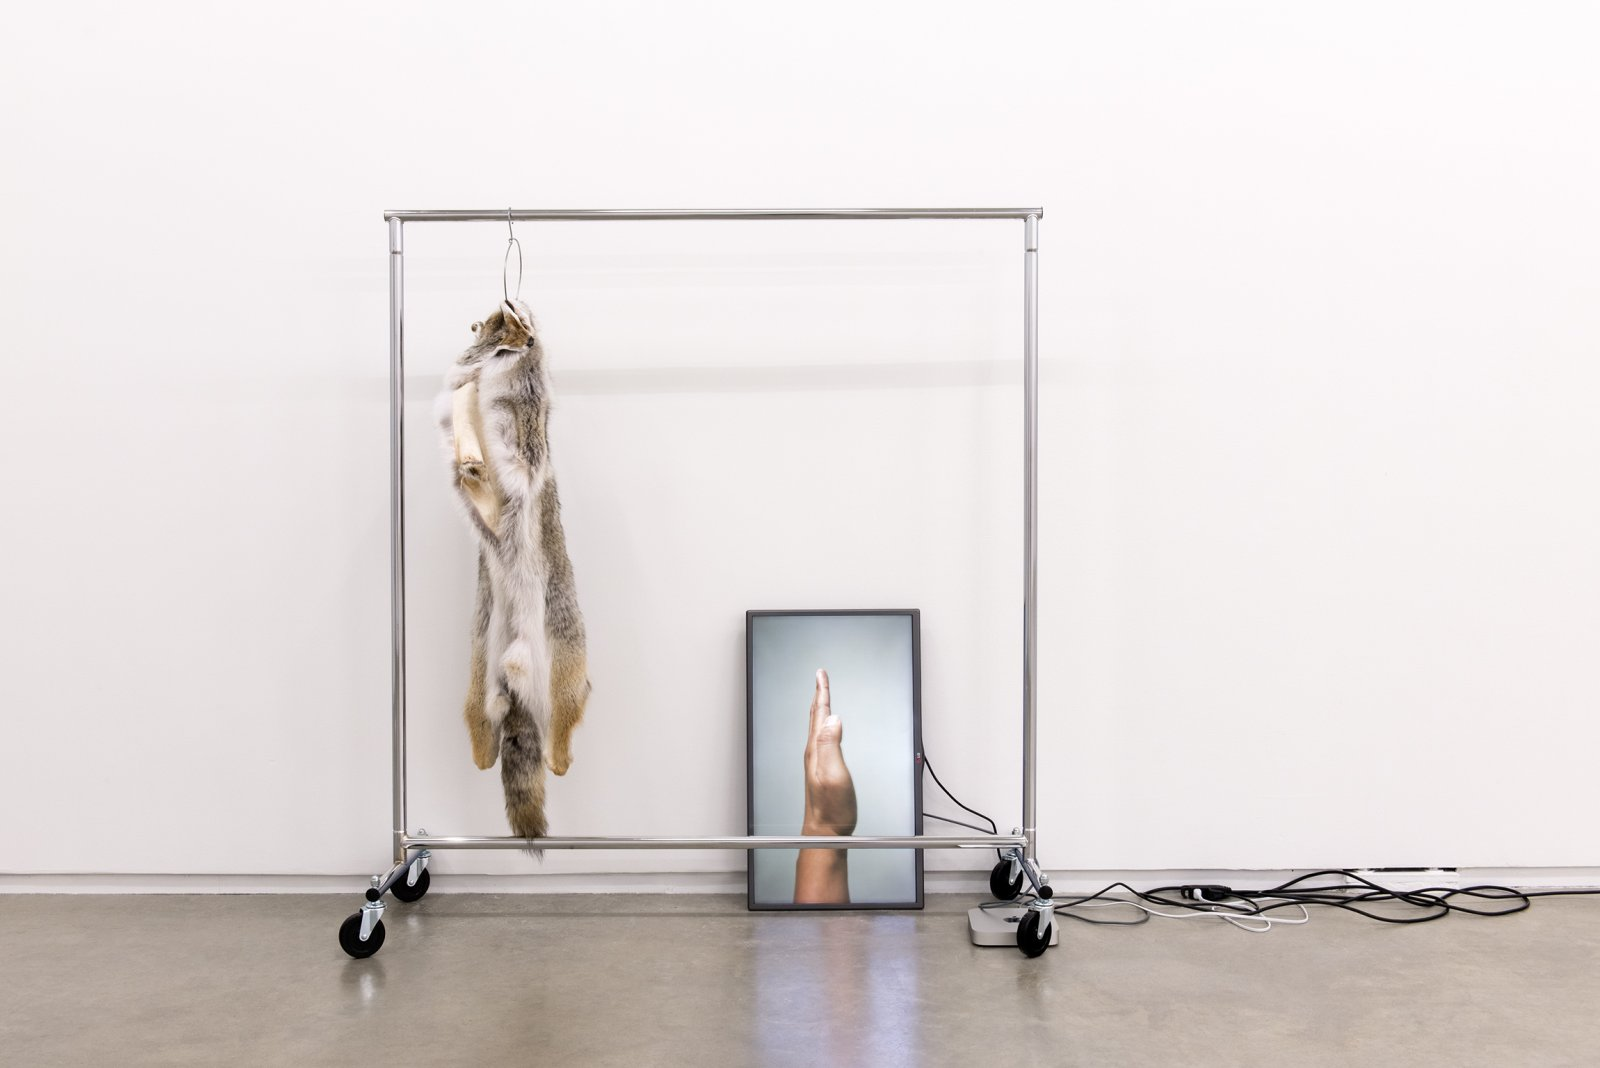 Duane Linklater, The place I seek to go, 2014, coyote fur, garment rack, hanger, flat screen TV, mac mini, HD video loop, cables, 132 x 66 x 20 in. (335 x 168 x 52 cm)